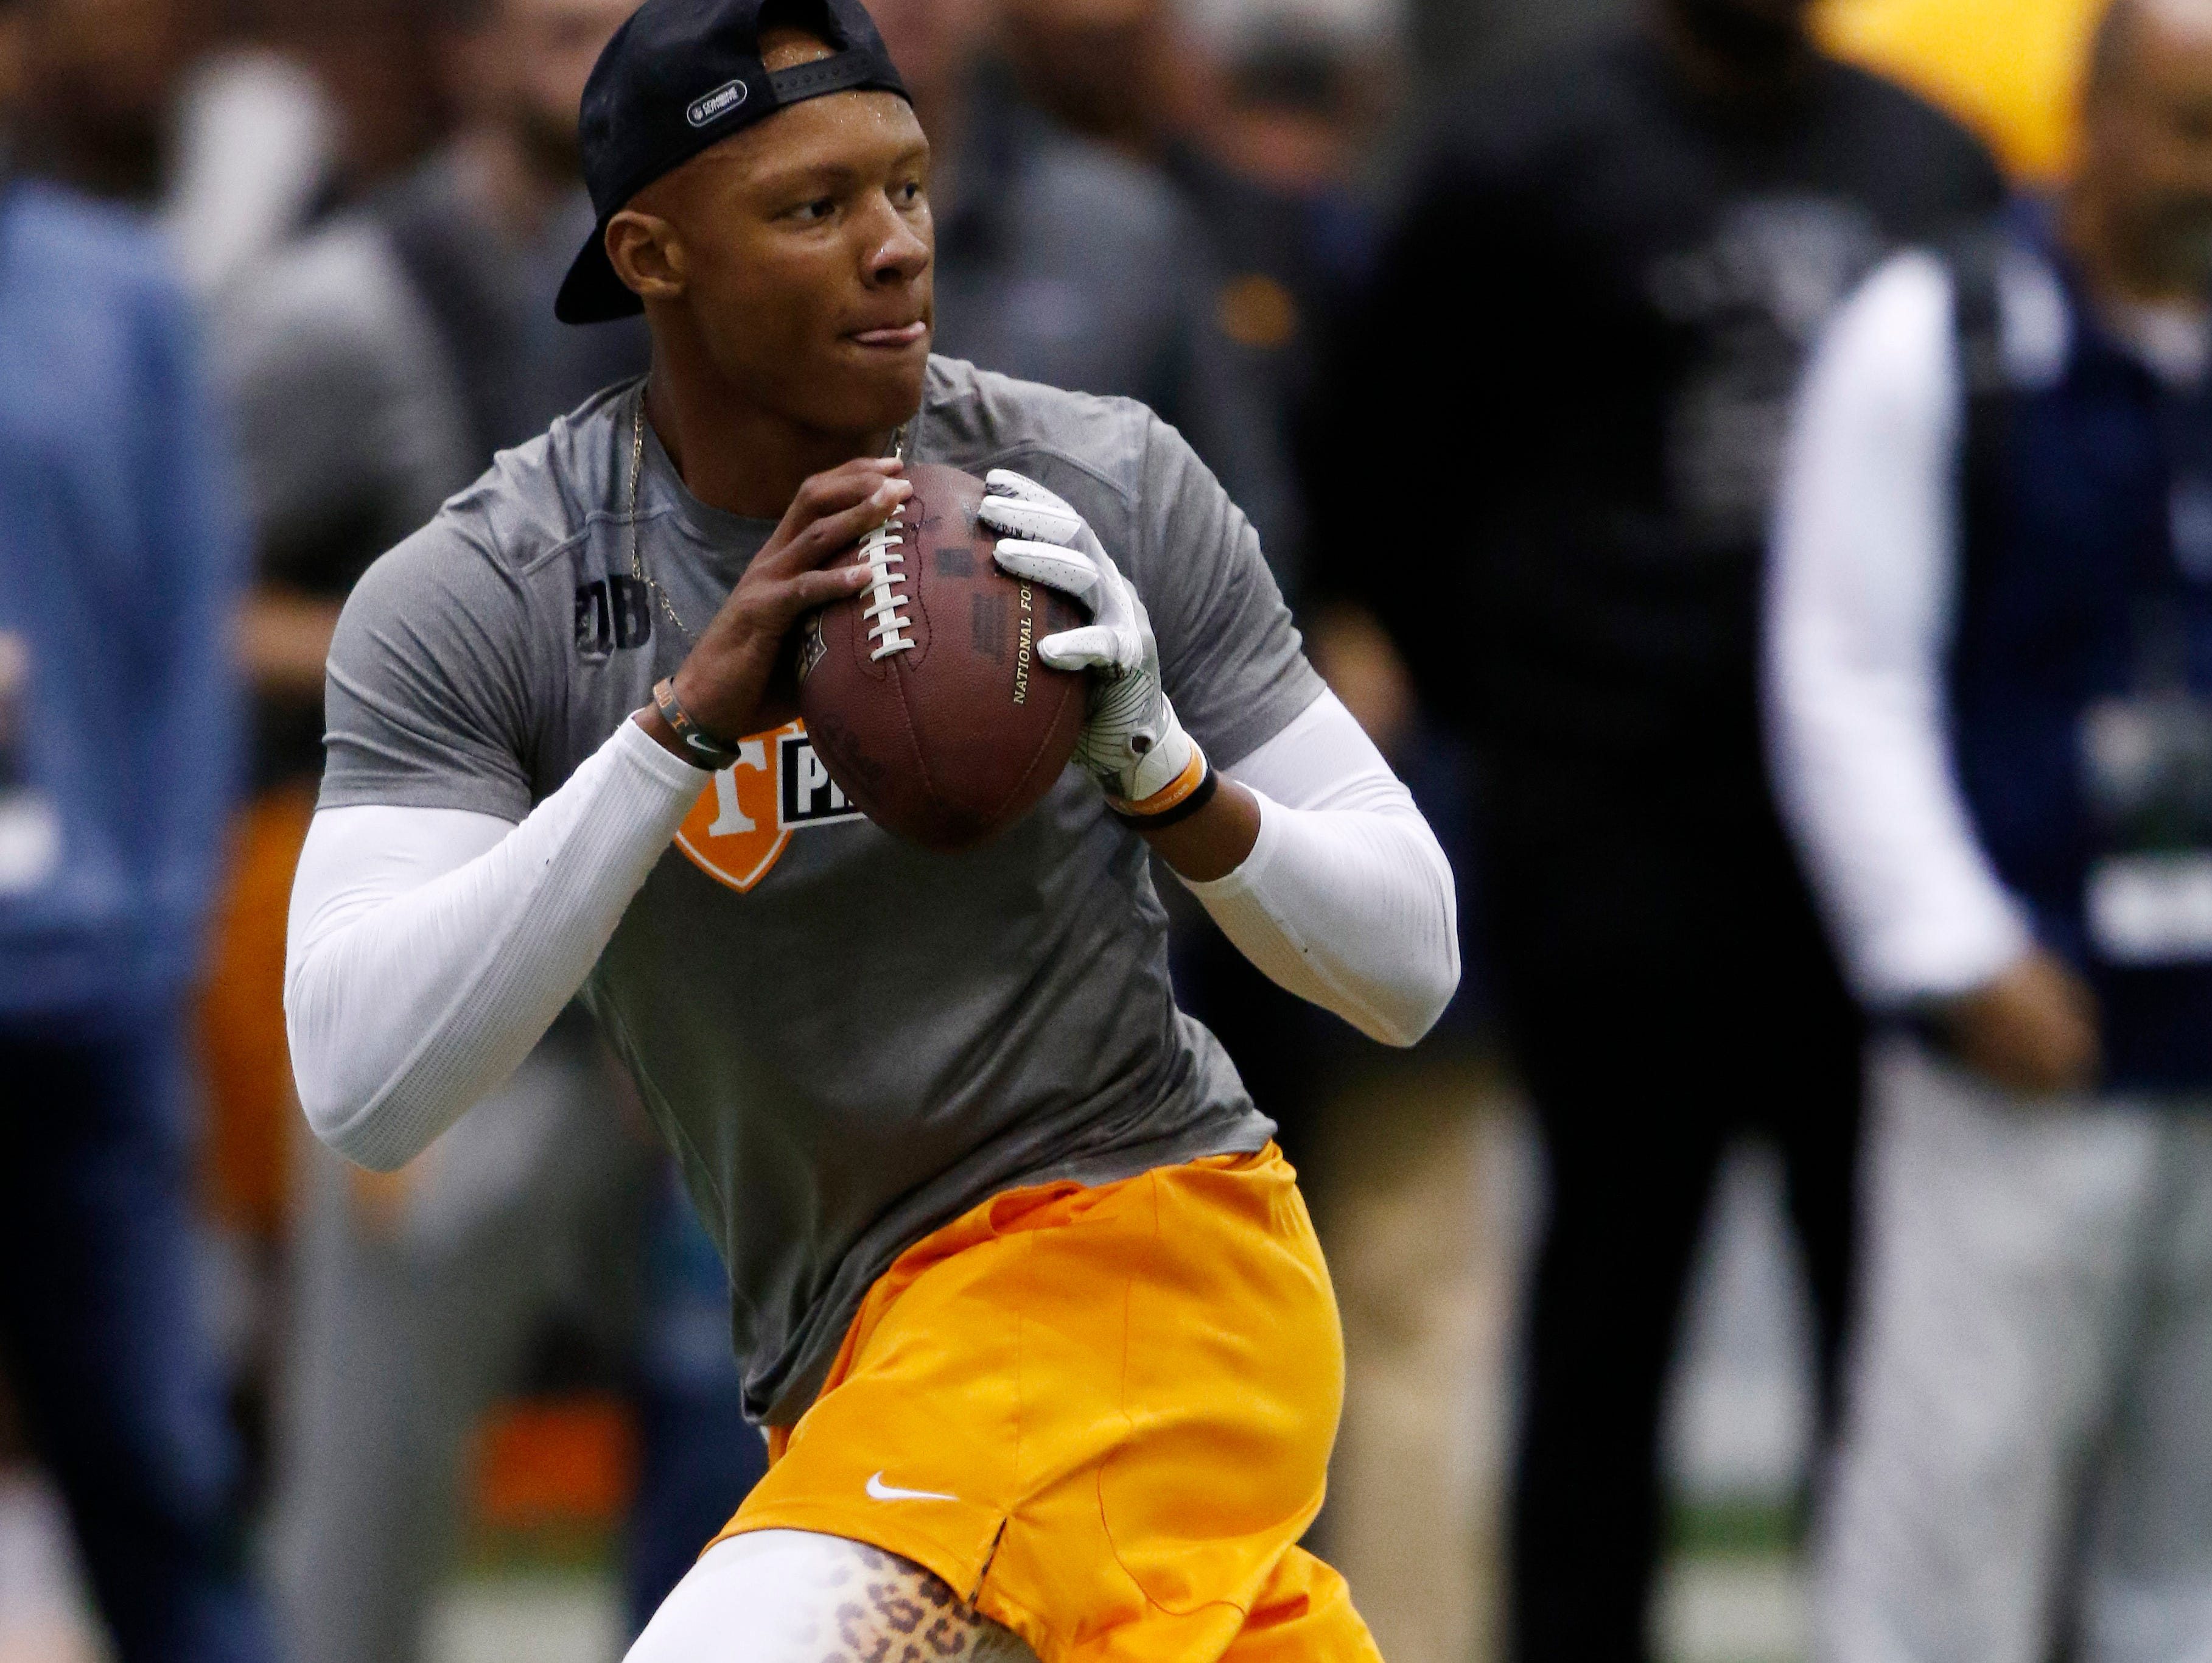 Joshua Dobbs competes during the NFL Pro Day at UT Friday, March 32, 2017 in Knoxville, Tenn.